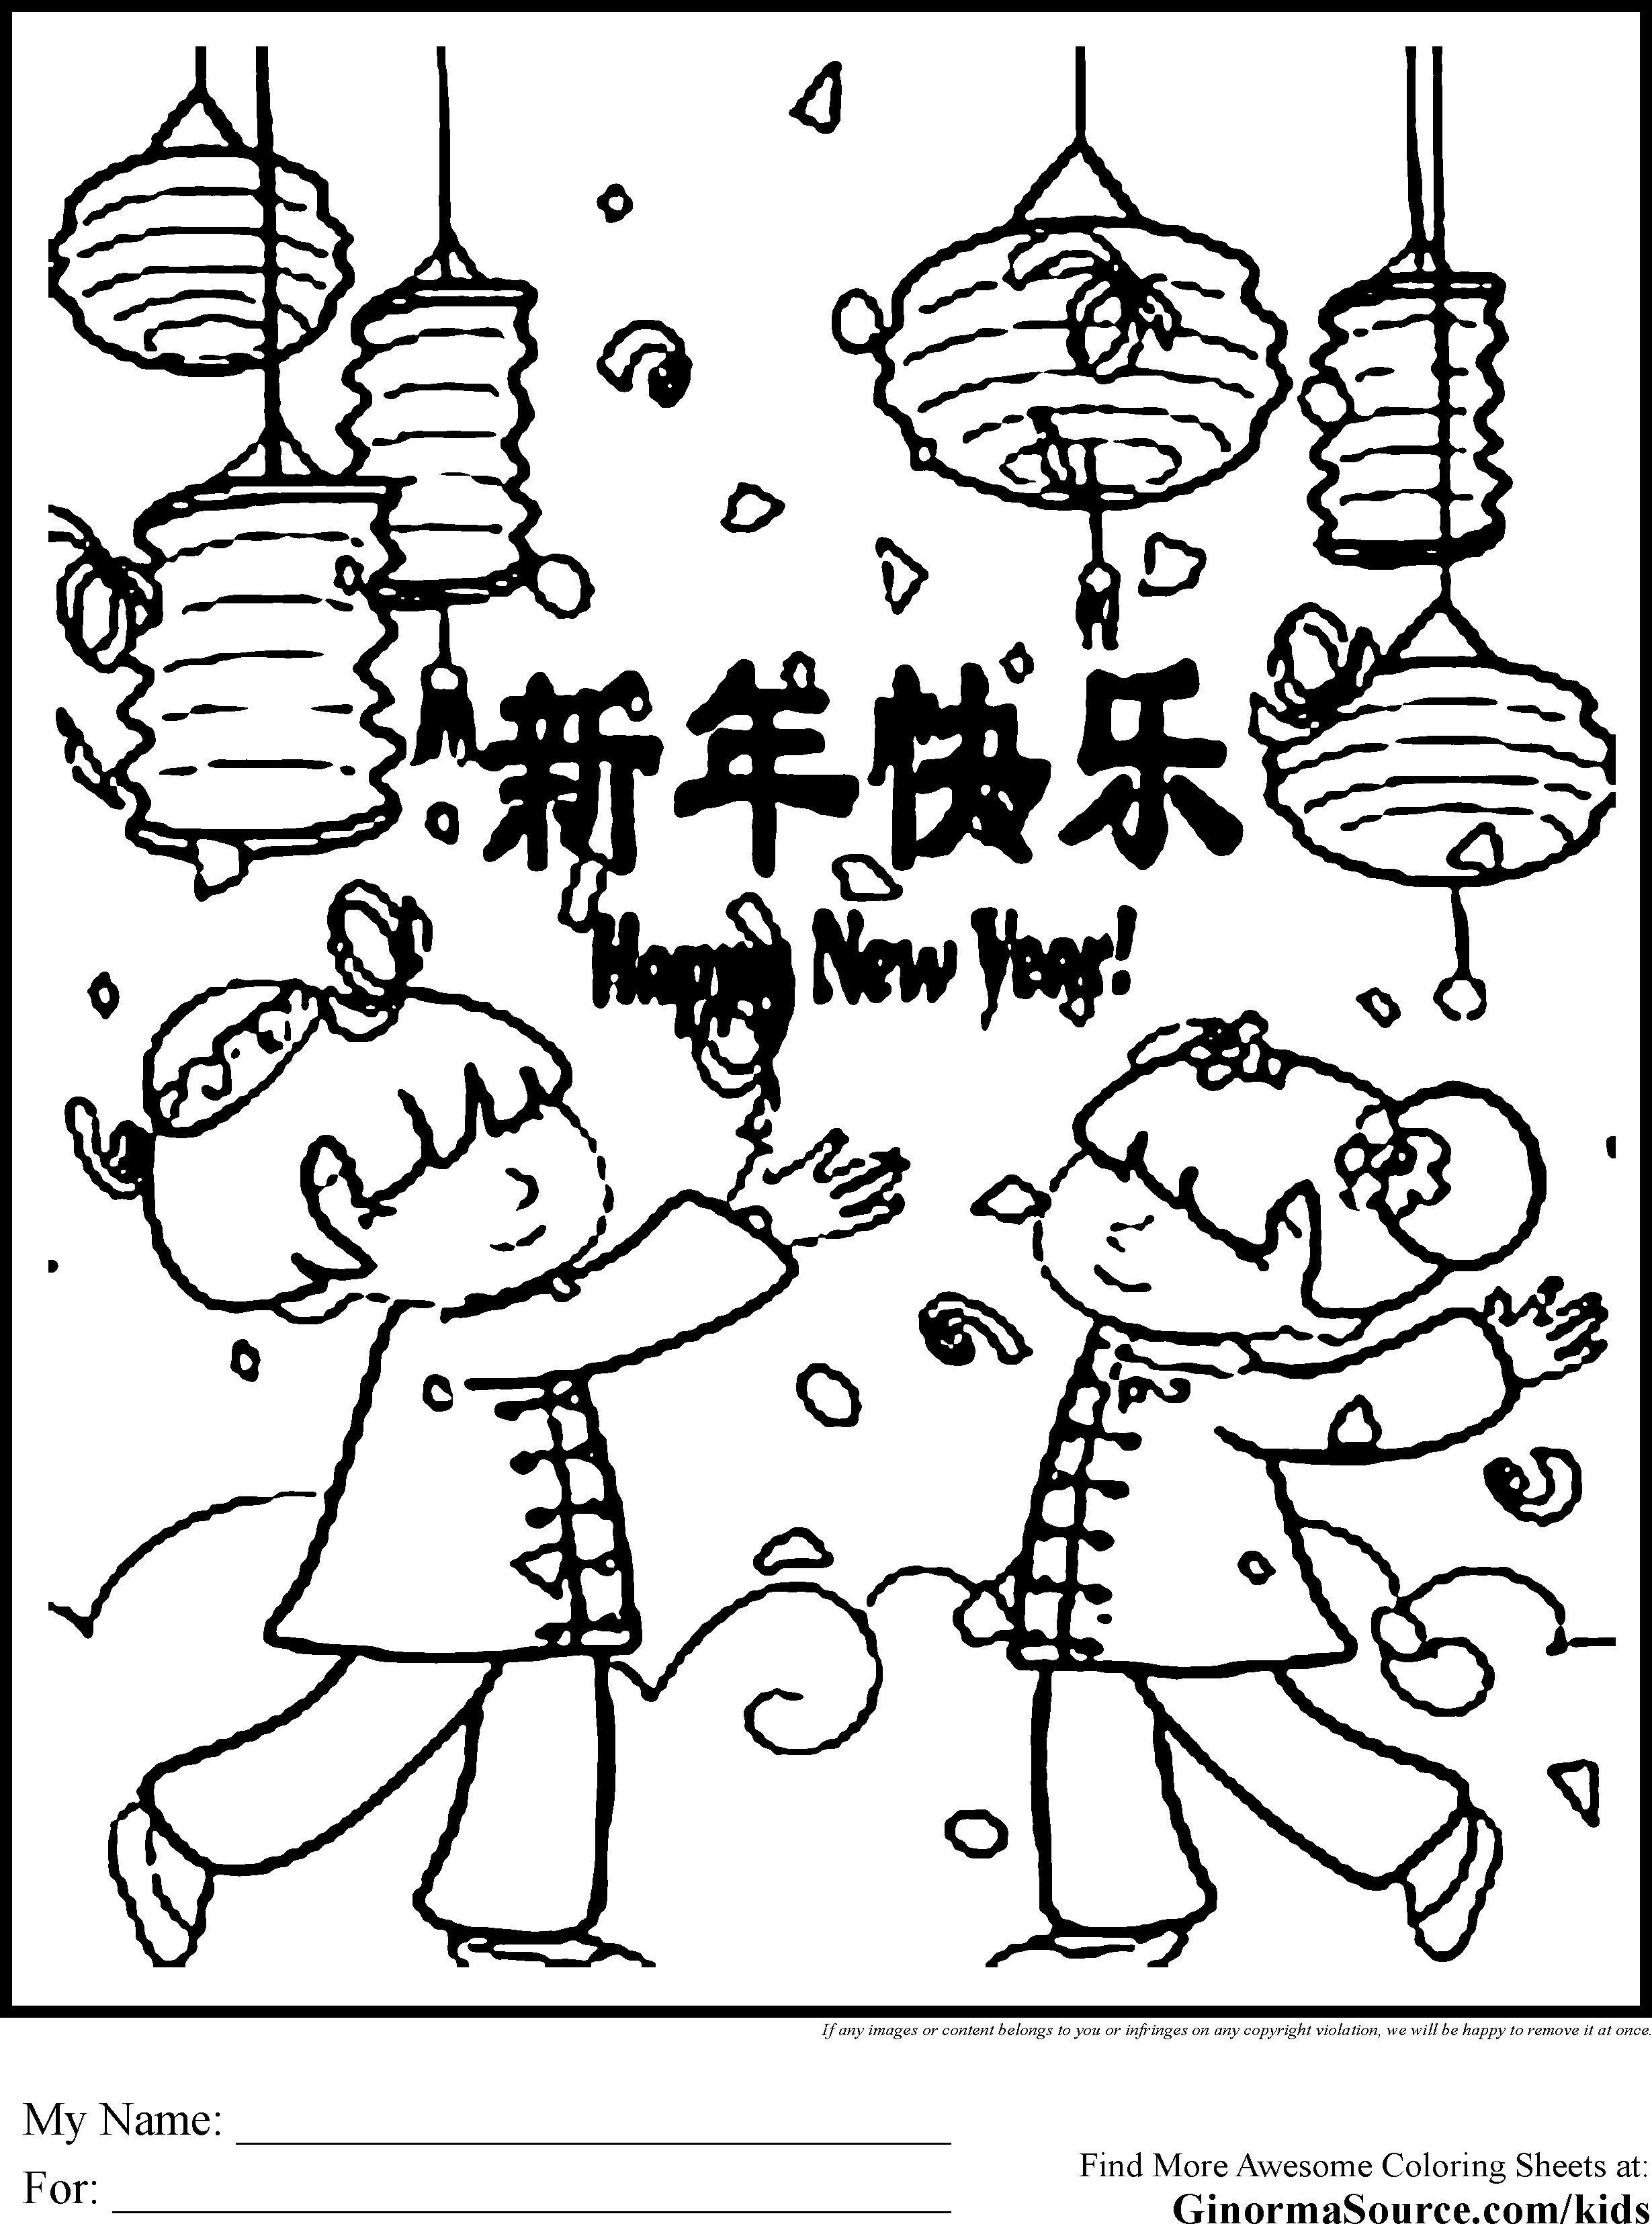 Lunar New Year Coloring Pages At Getcolorings